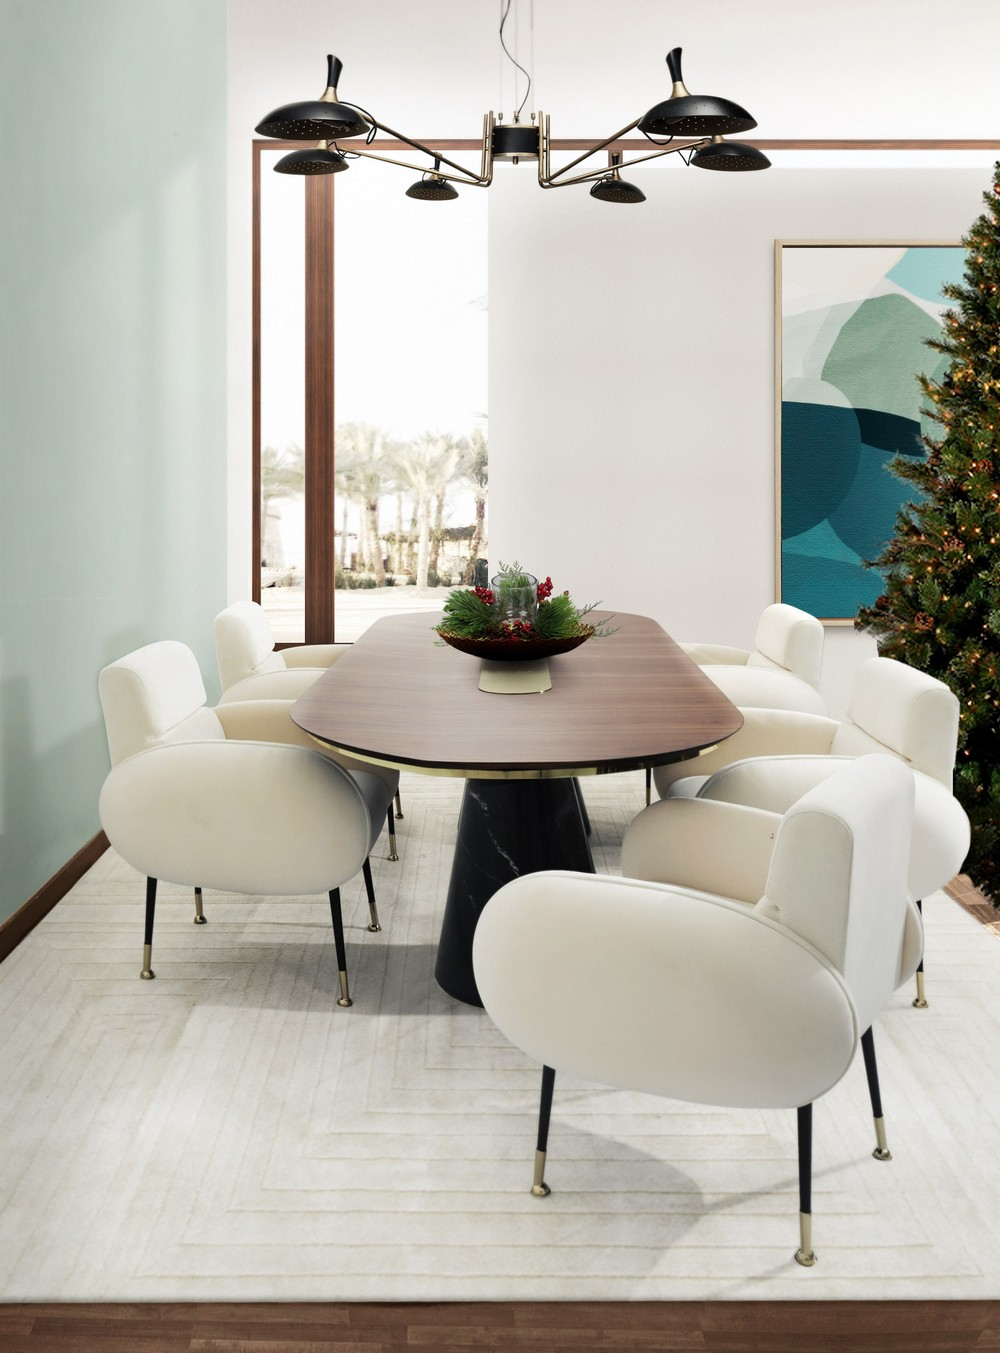 Christmas Is Here: Dining Room Ideas For An Unforgettable Celebration dining room ideas Christmas Is Here: Dining Room Ideas For An Unforgettable Celebration Essential Home Im Dreaming of A White Christmas Marco Dining Chair and Bertoia Big Dining Table 7046855